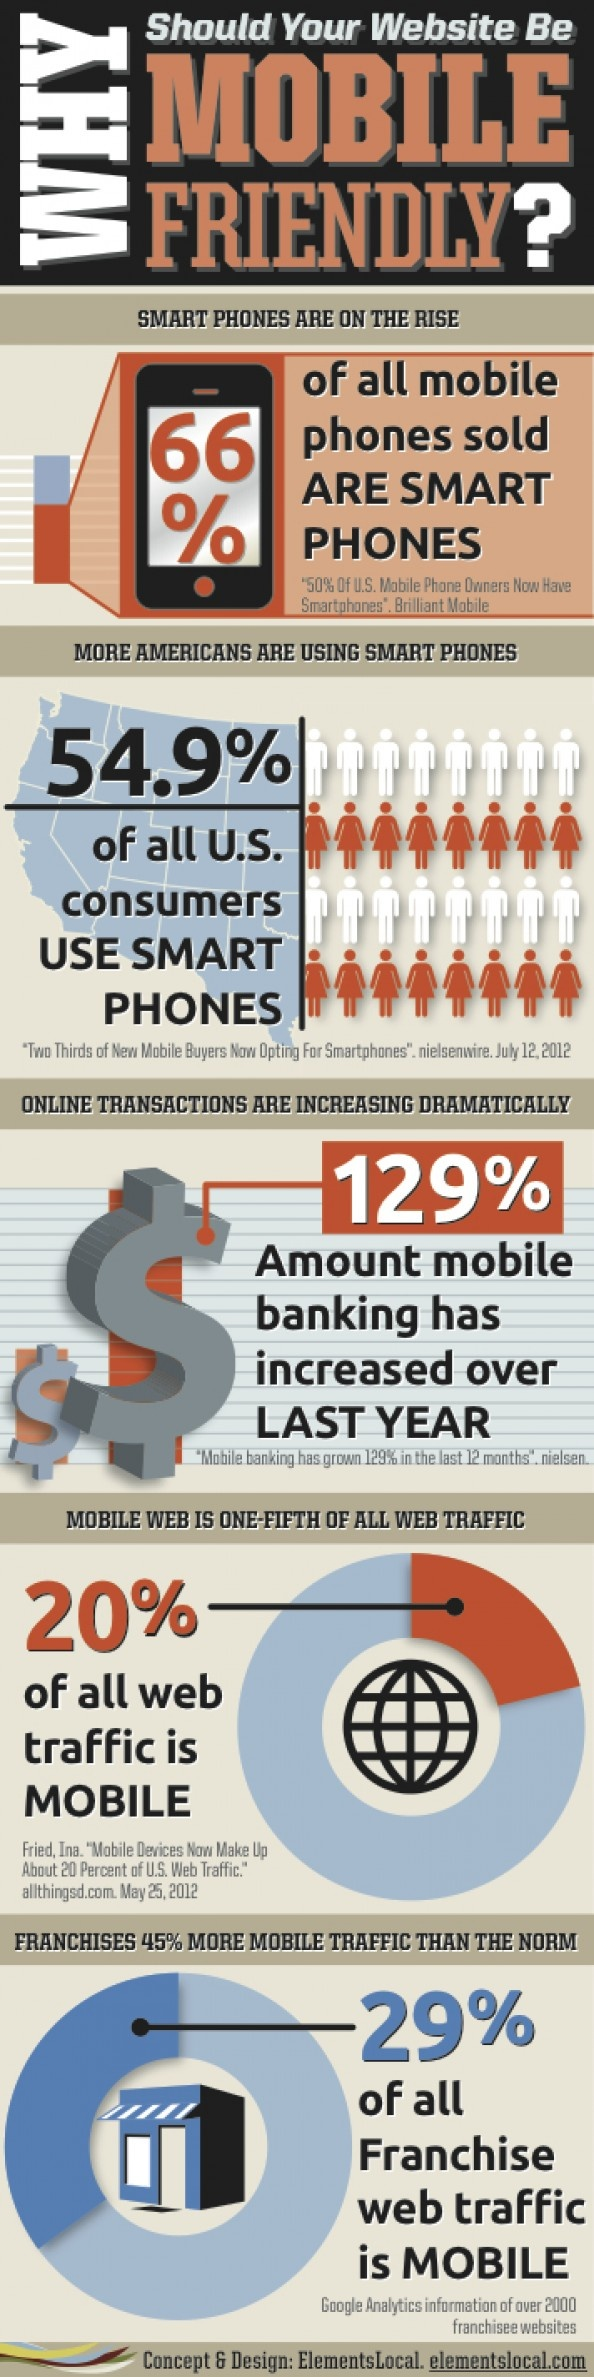 Why Should Your Website Be #Mobile Friendly?